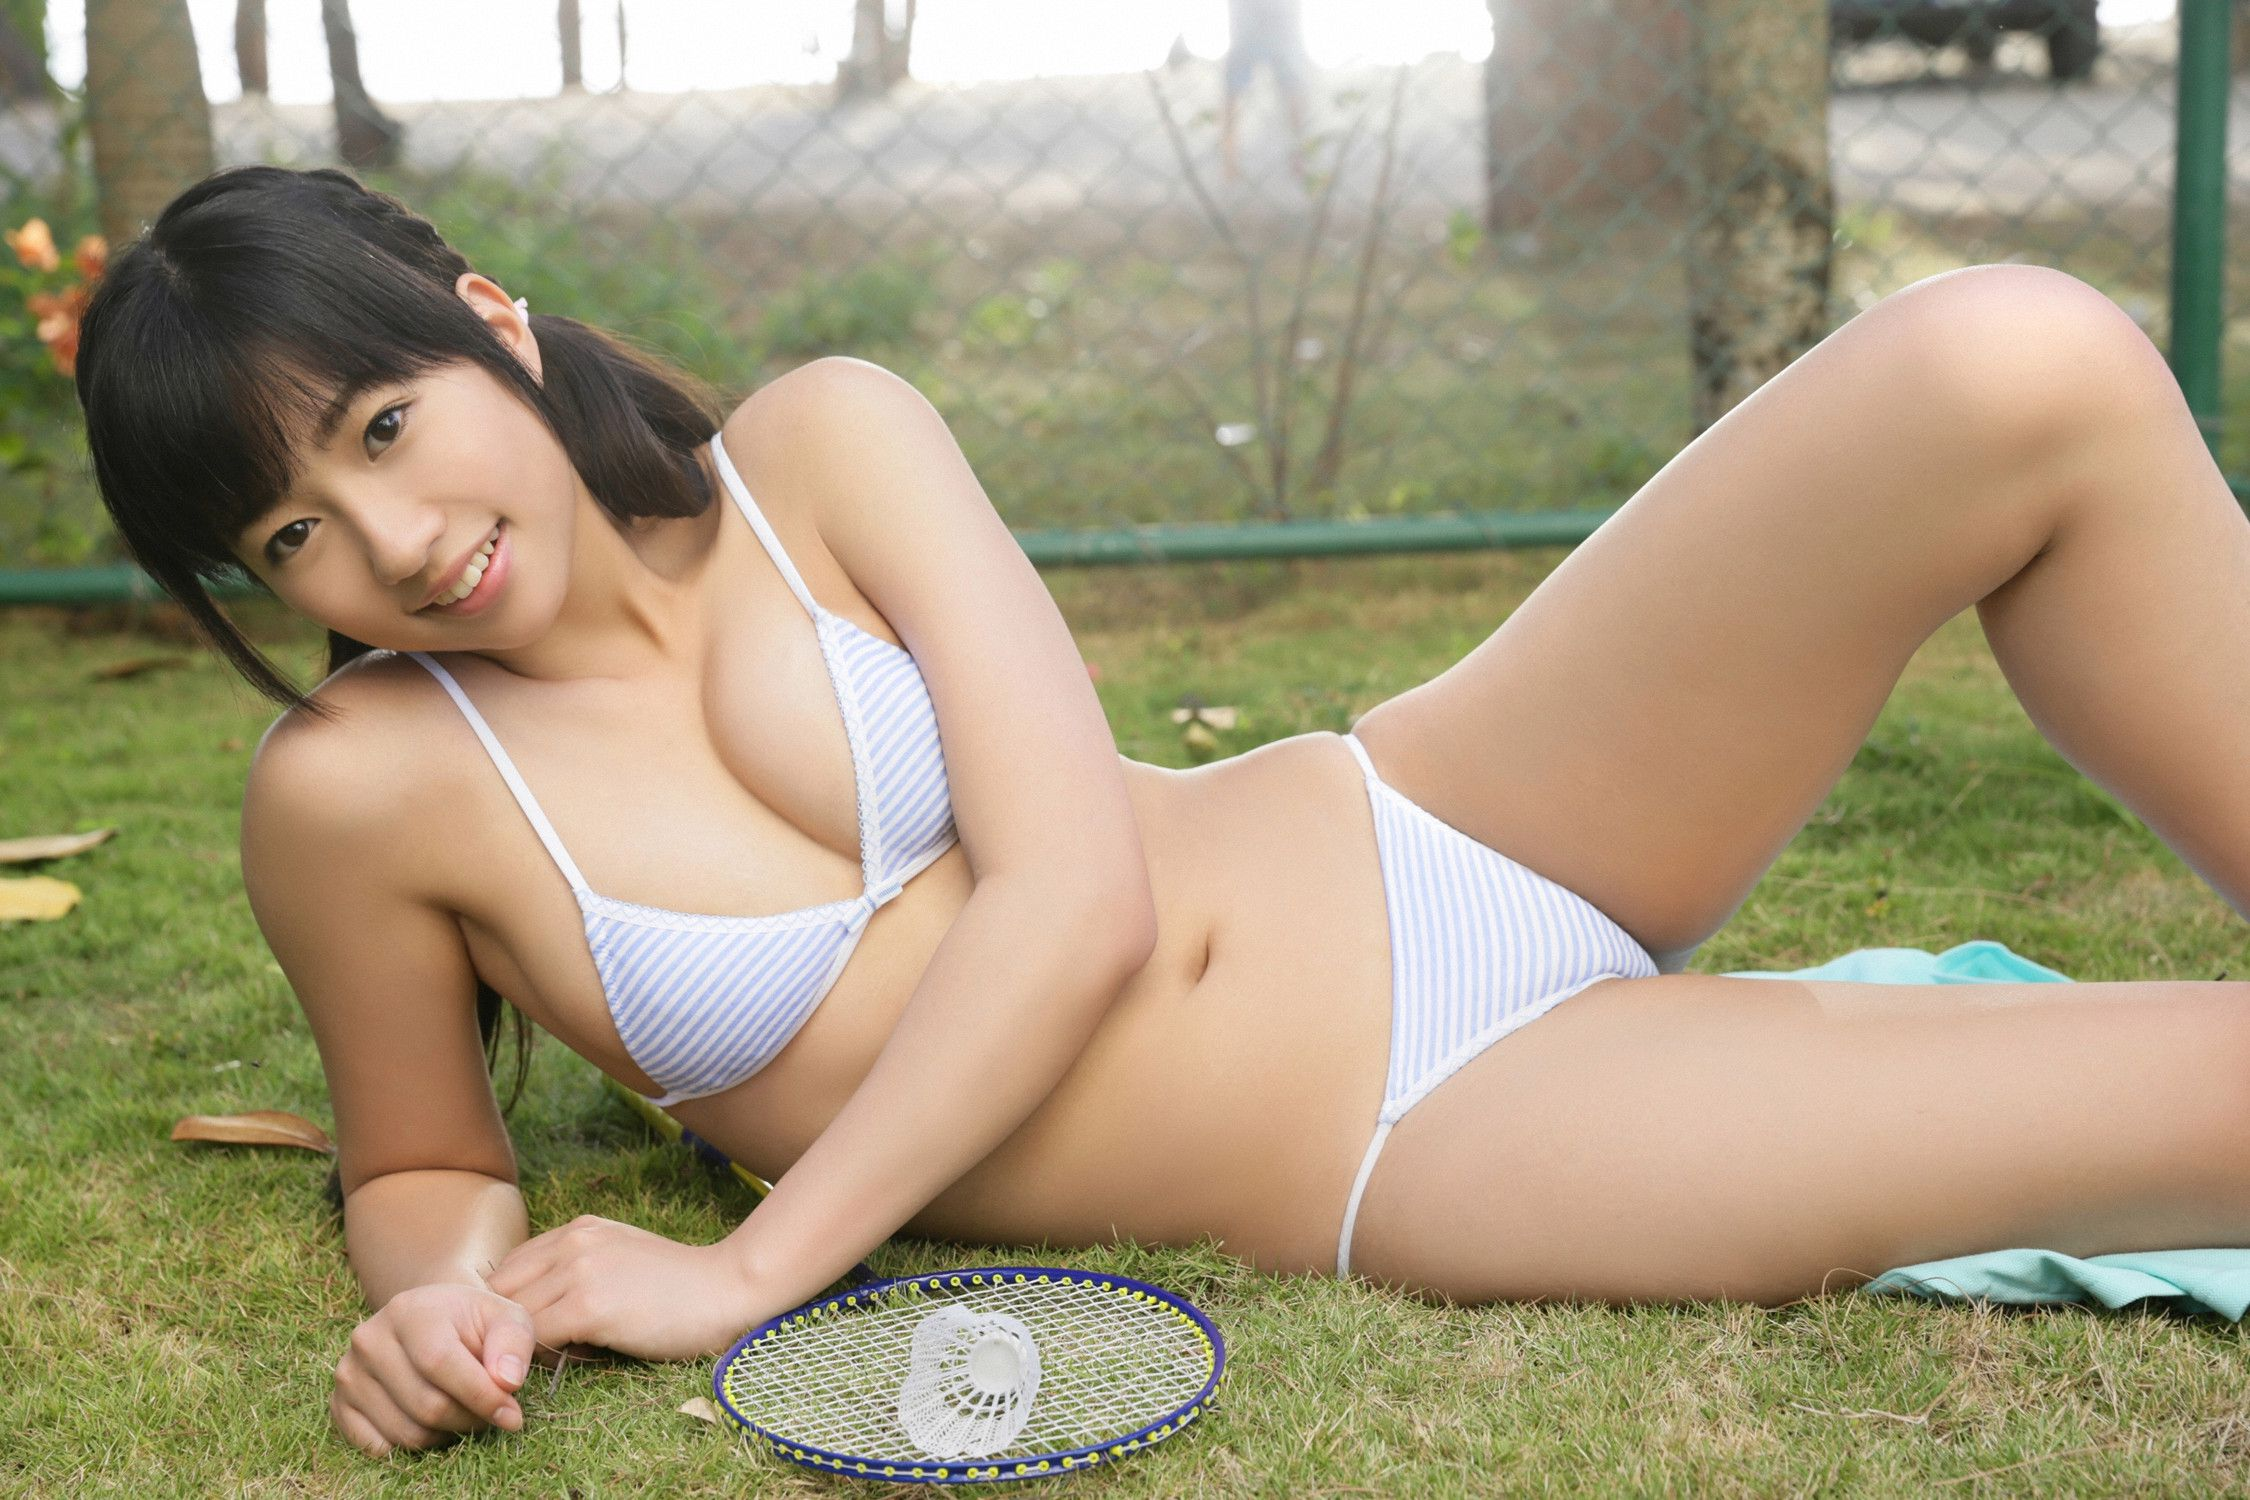 Ayaka Onuki an active female college student with a wonderful body style and fine skin009